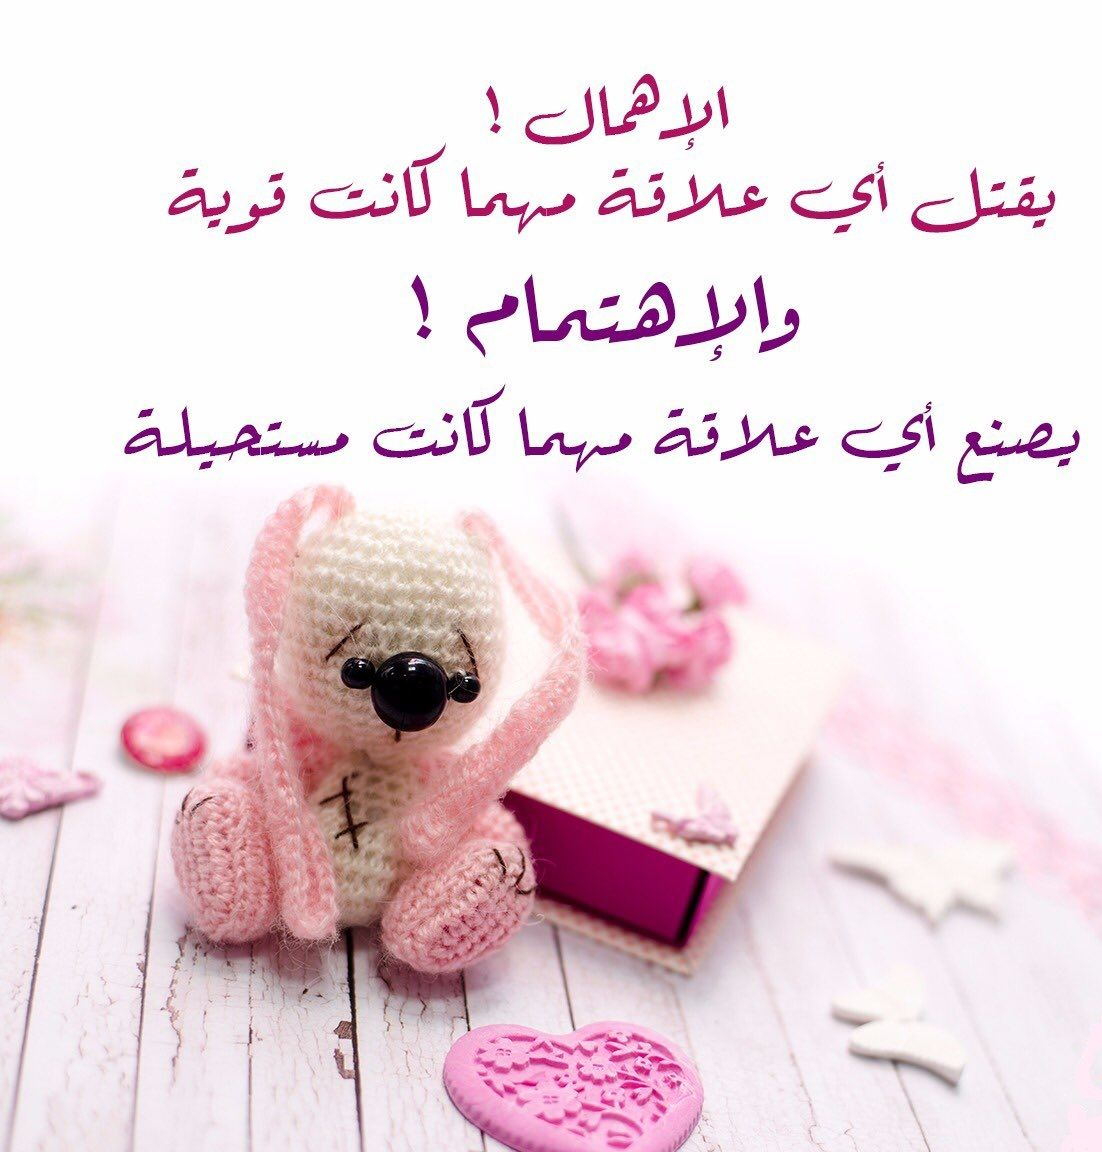 Pin By رغــــــد On بطـاقـات صبـاحيـة واسـلاميـة Islamic Pictures Qoutes Arabic Quotes